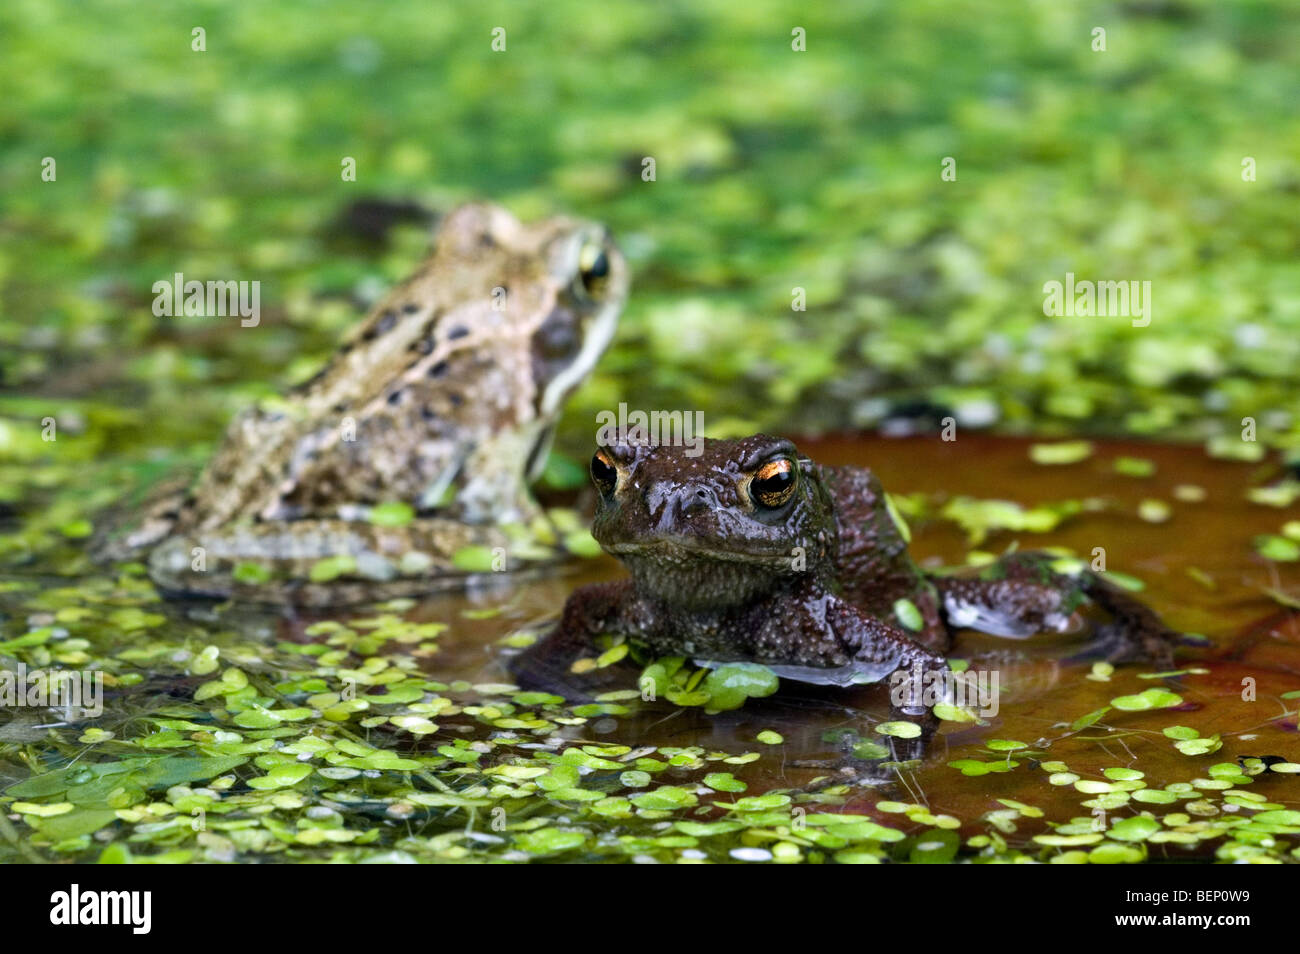 toad lily pad stock photos u0026 toad lily pad stock images alamy